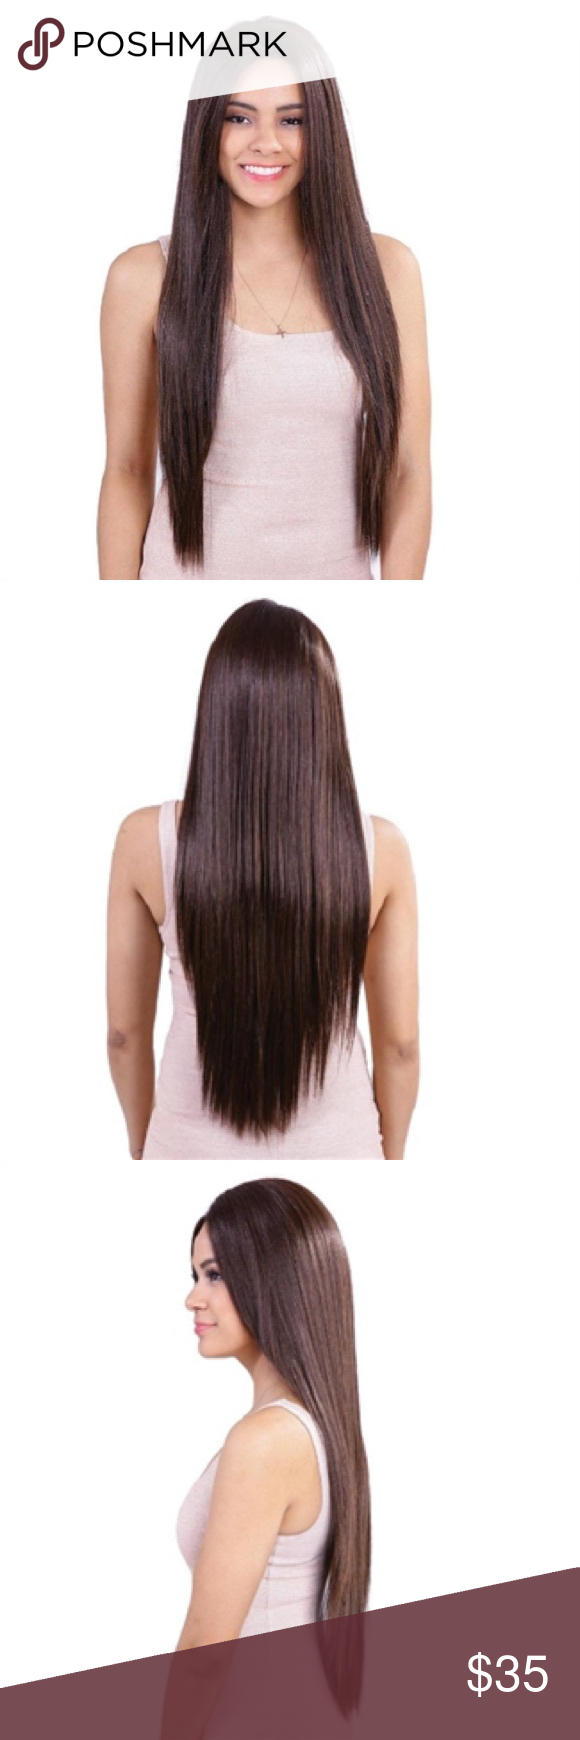 Pure Natural Bohemian Wig Remy